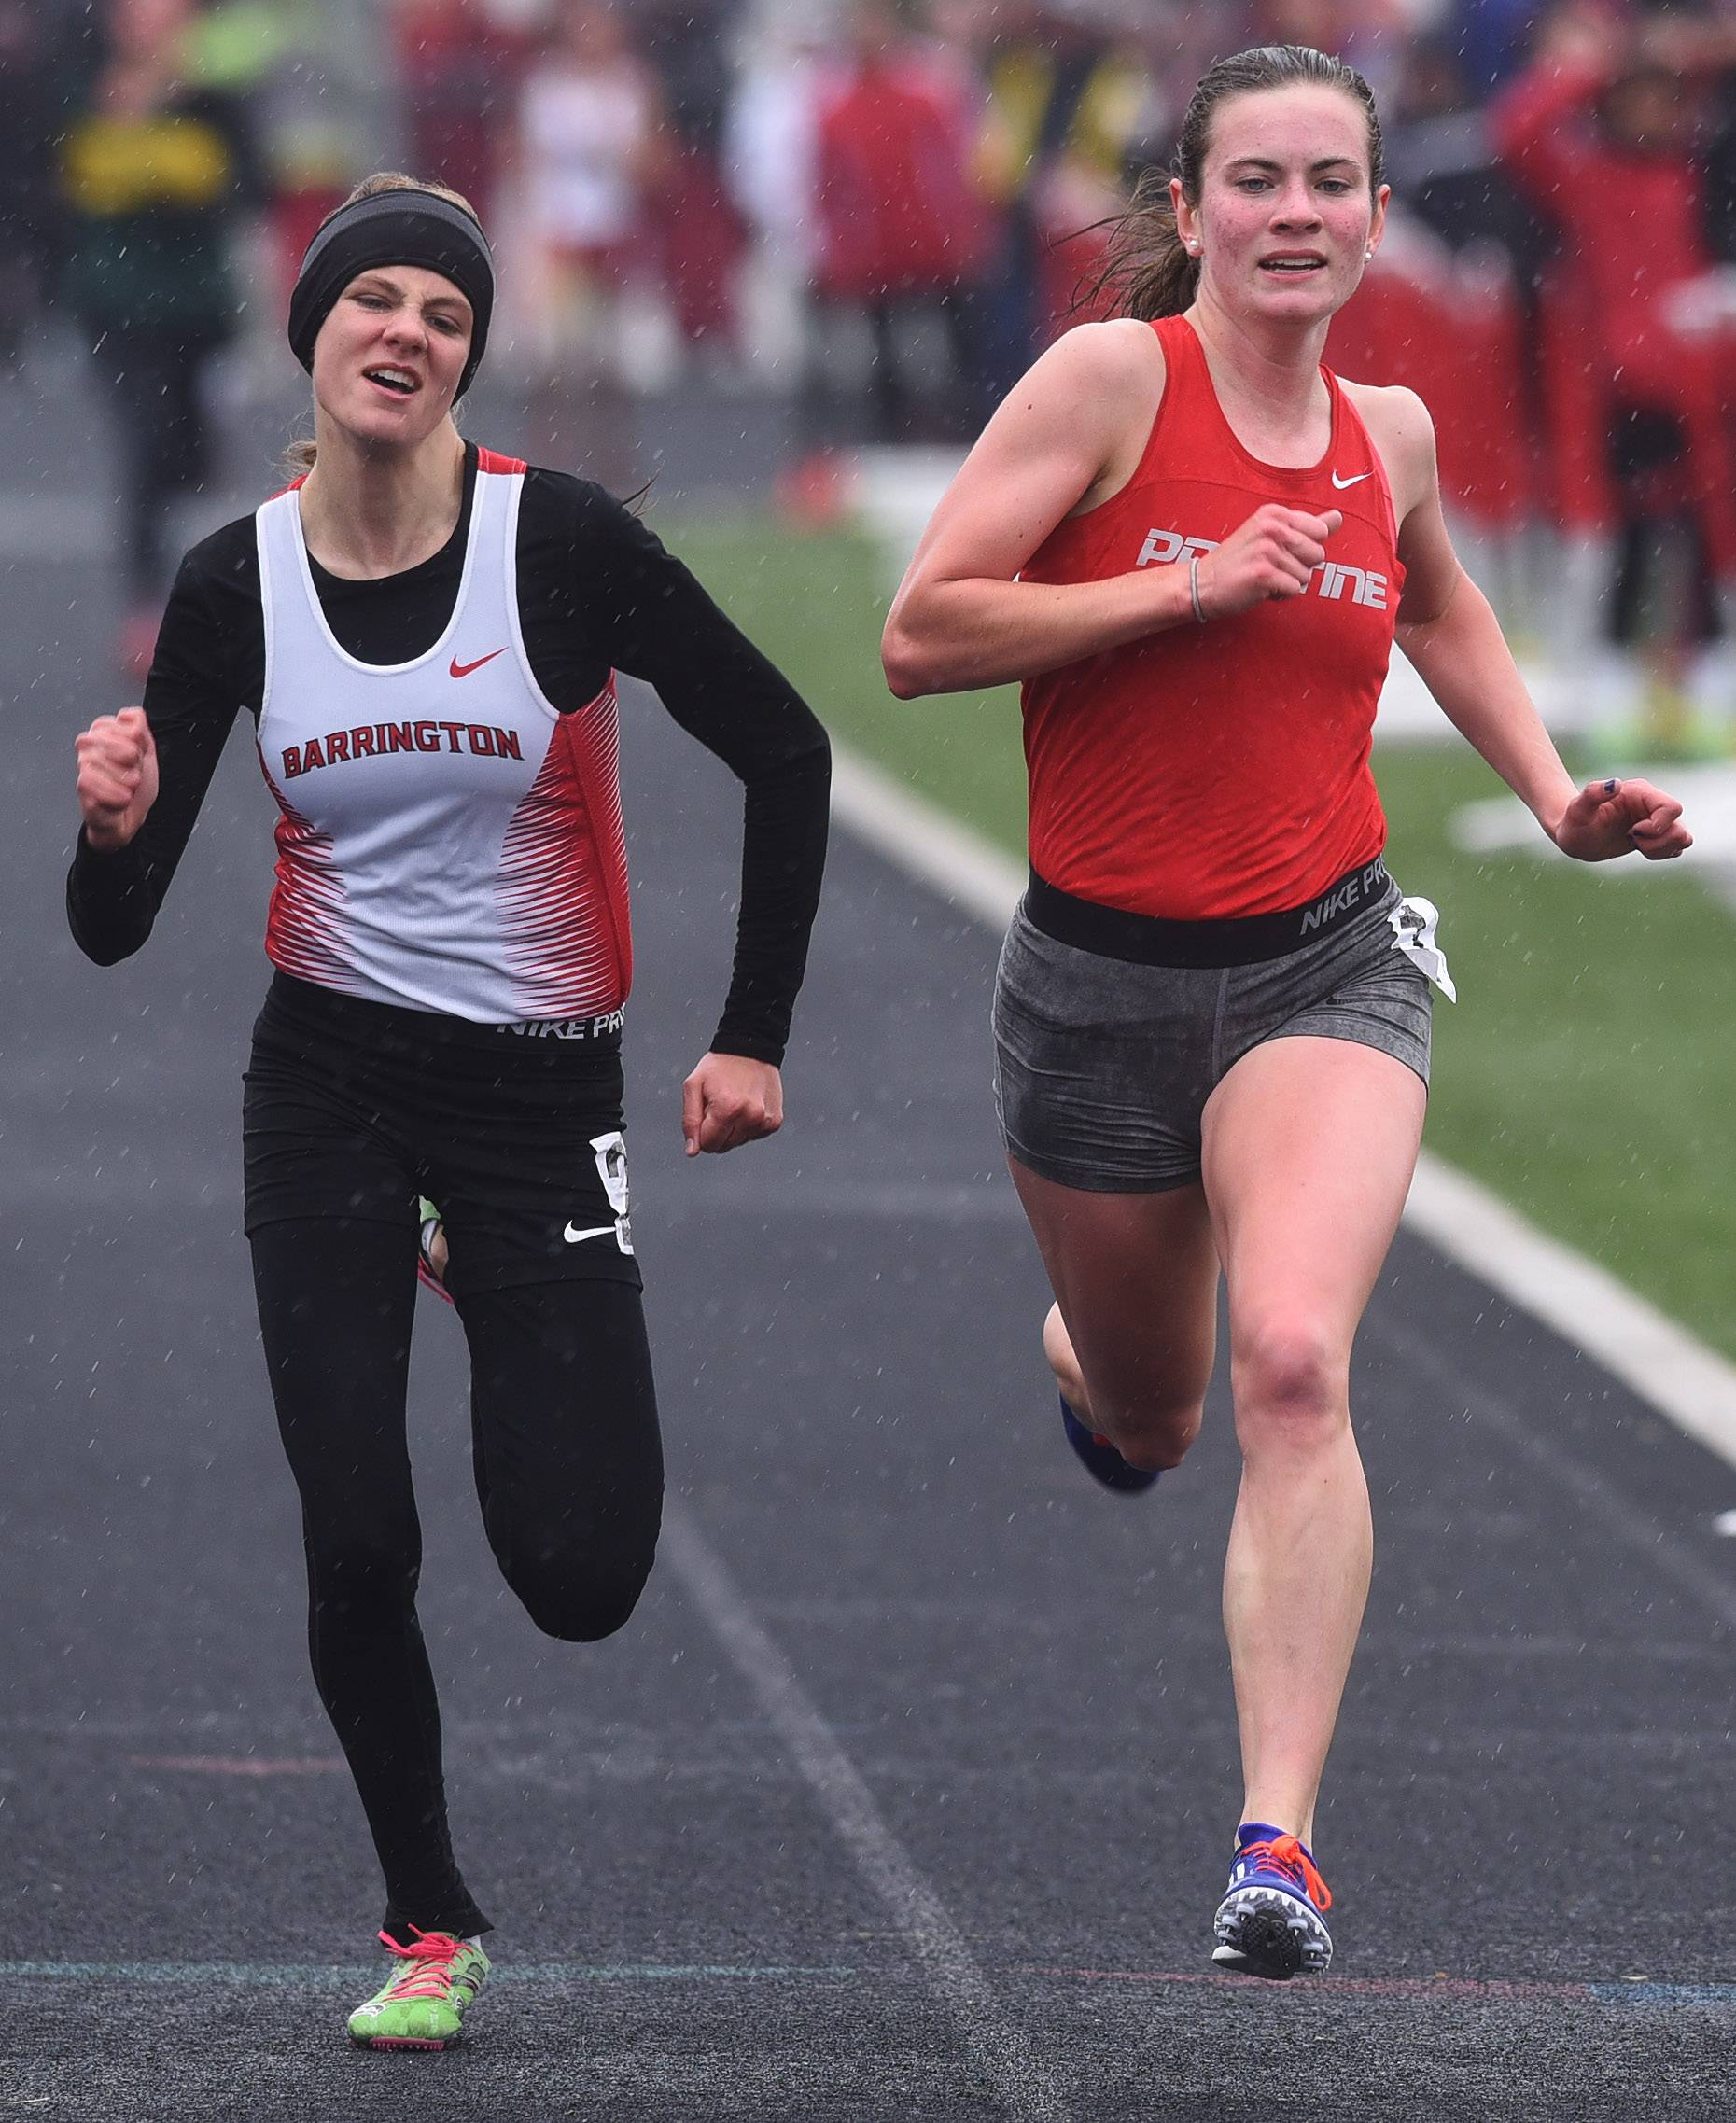 Palatine's Kelly O'Brien, right, finishes the girls 1,600-meter run ahead of Barrington's Jocelyn Long during the Palatine Relays at Palatine High School on Saturday. O'Brien's time was 5:15.04, while Long's was 5:15.07.